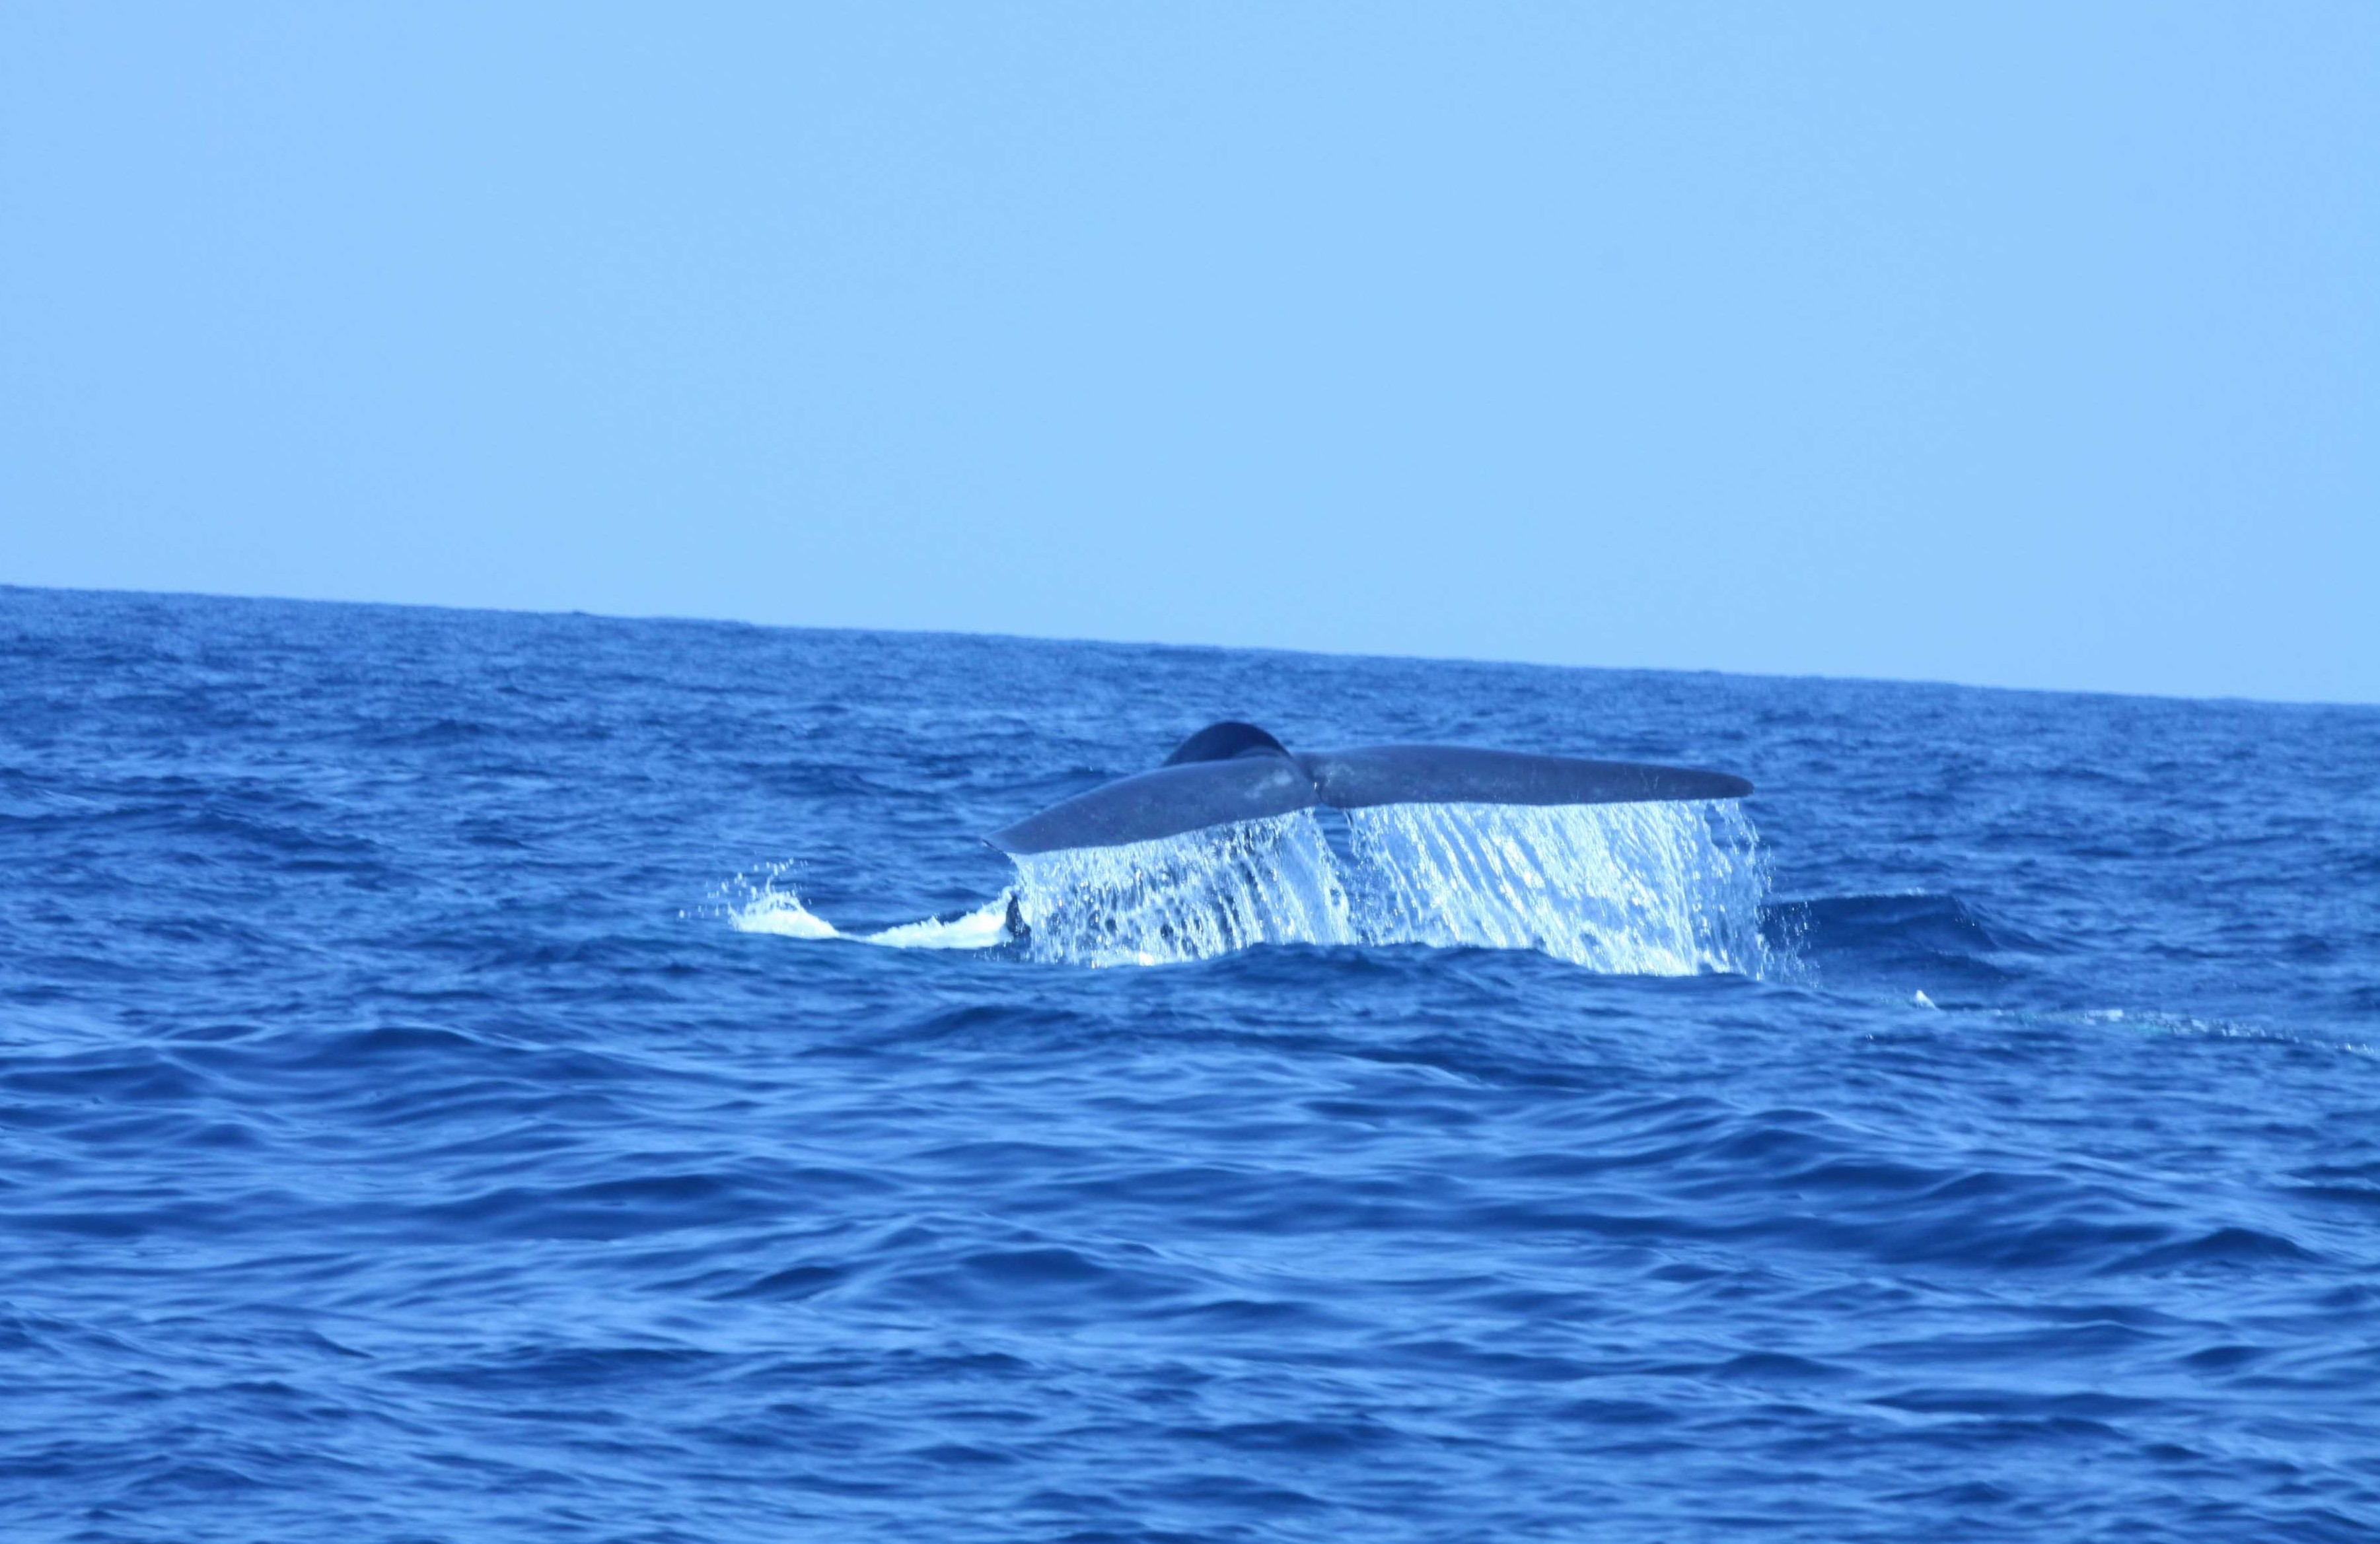 whales-photos-3-from-bwc